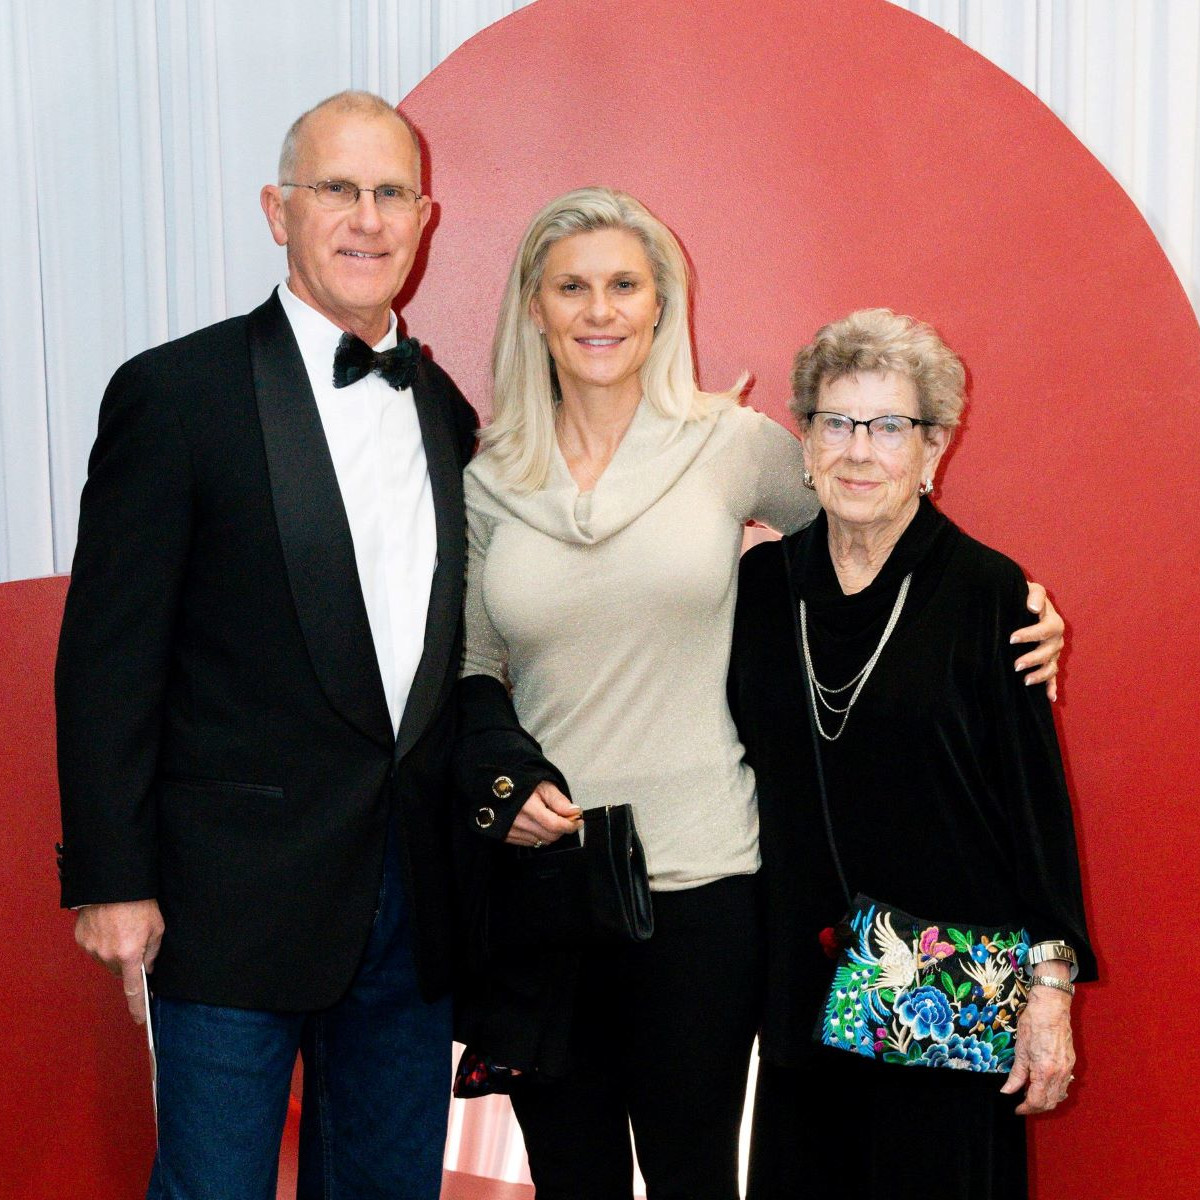 Larry Forney, Cindy Forney, Susan Forney